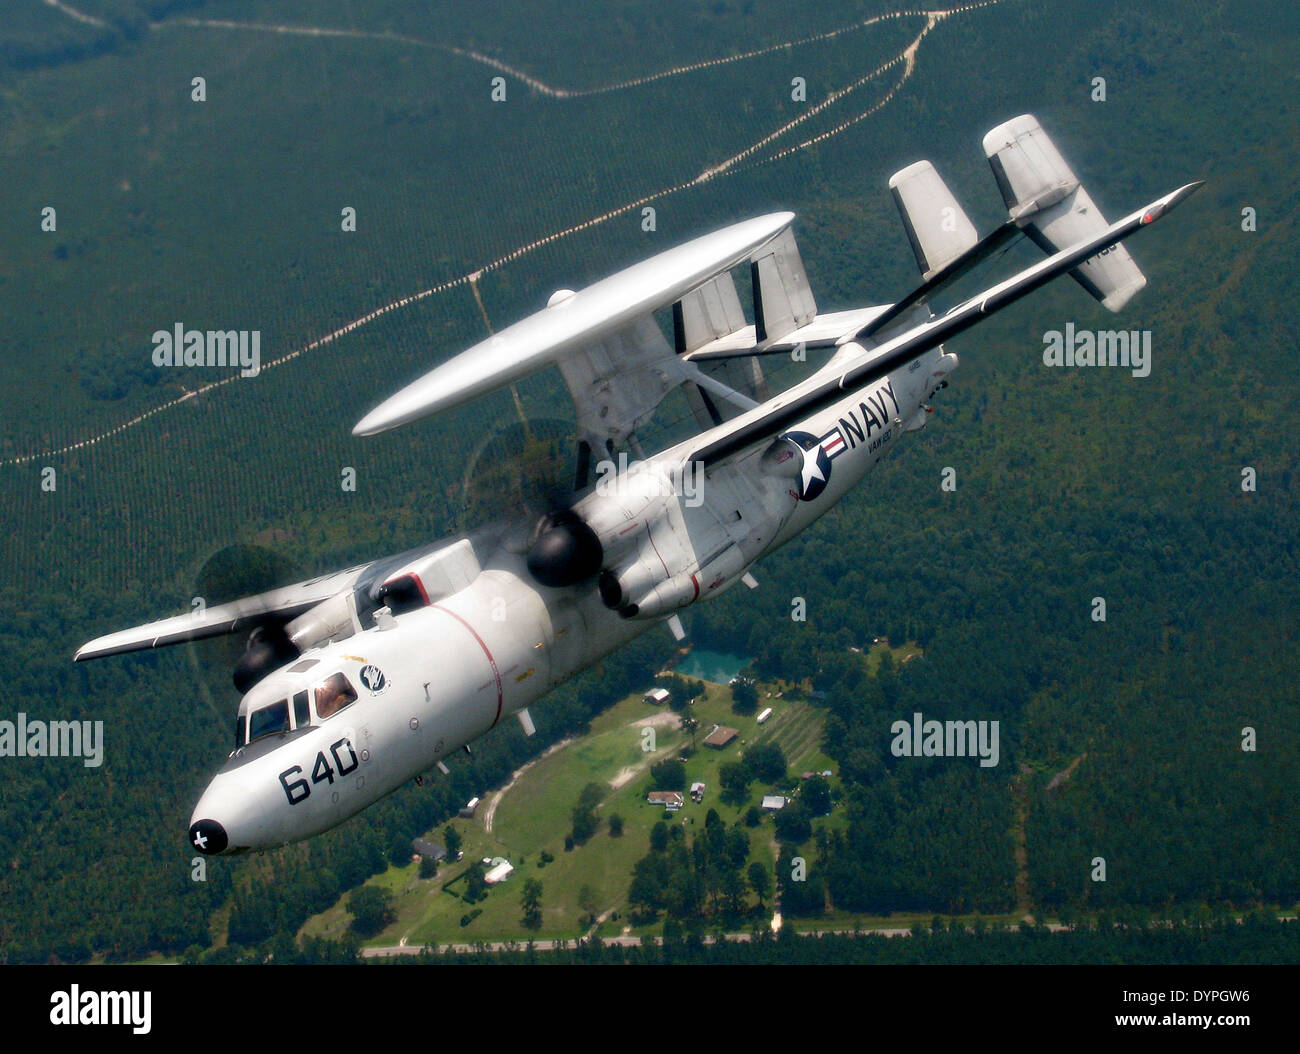 A US Navy E-2C Hawkeye airborne early warning aircraft banks during Field Carrier Landing Practice July 7, 2011 in Jacksonville, Florida. - Stock Image